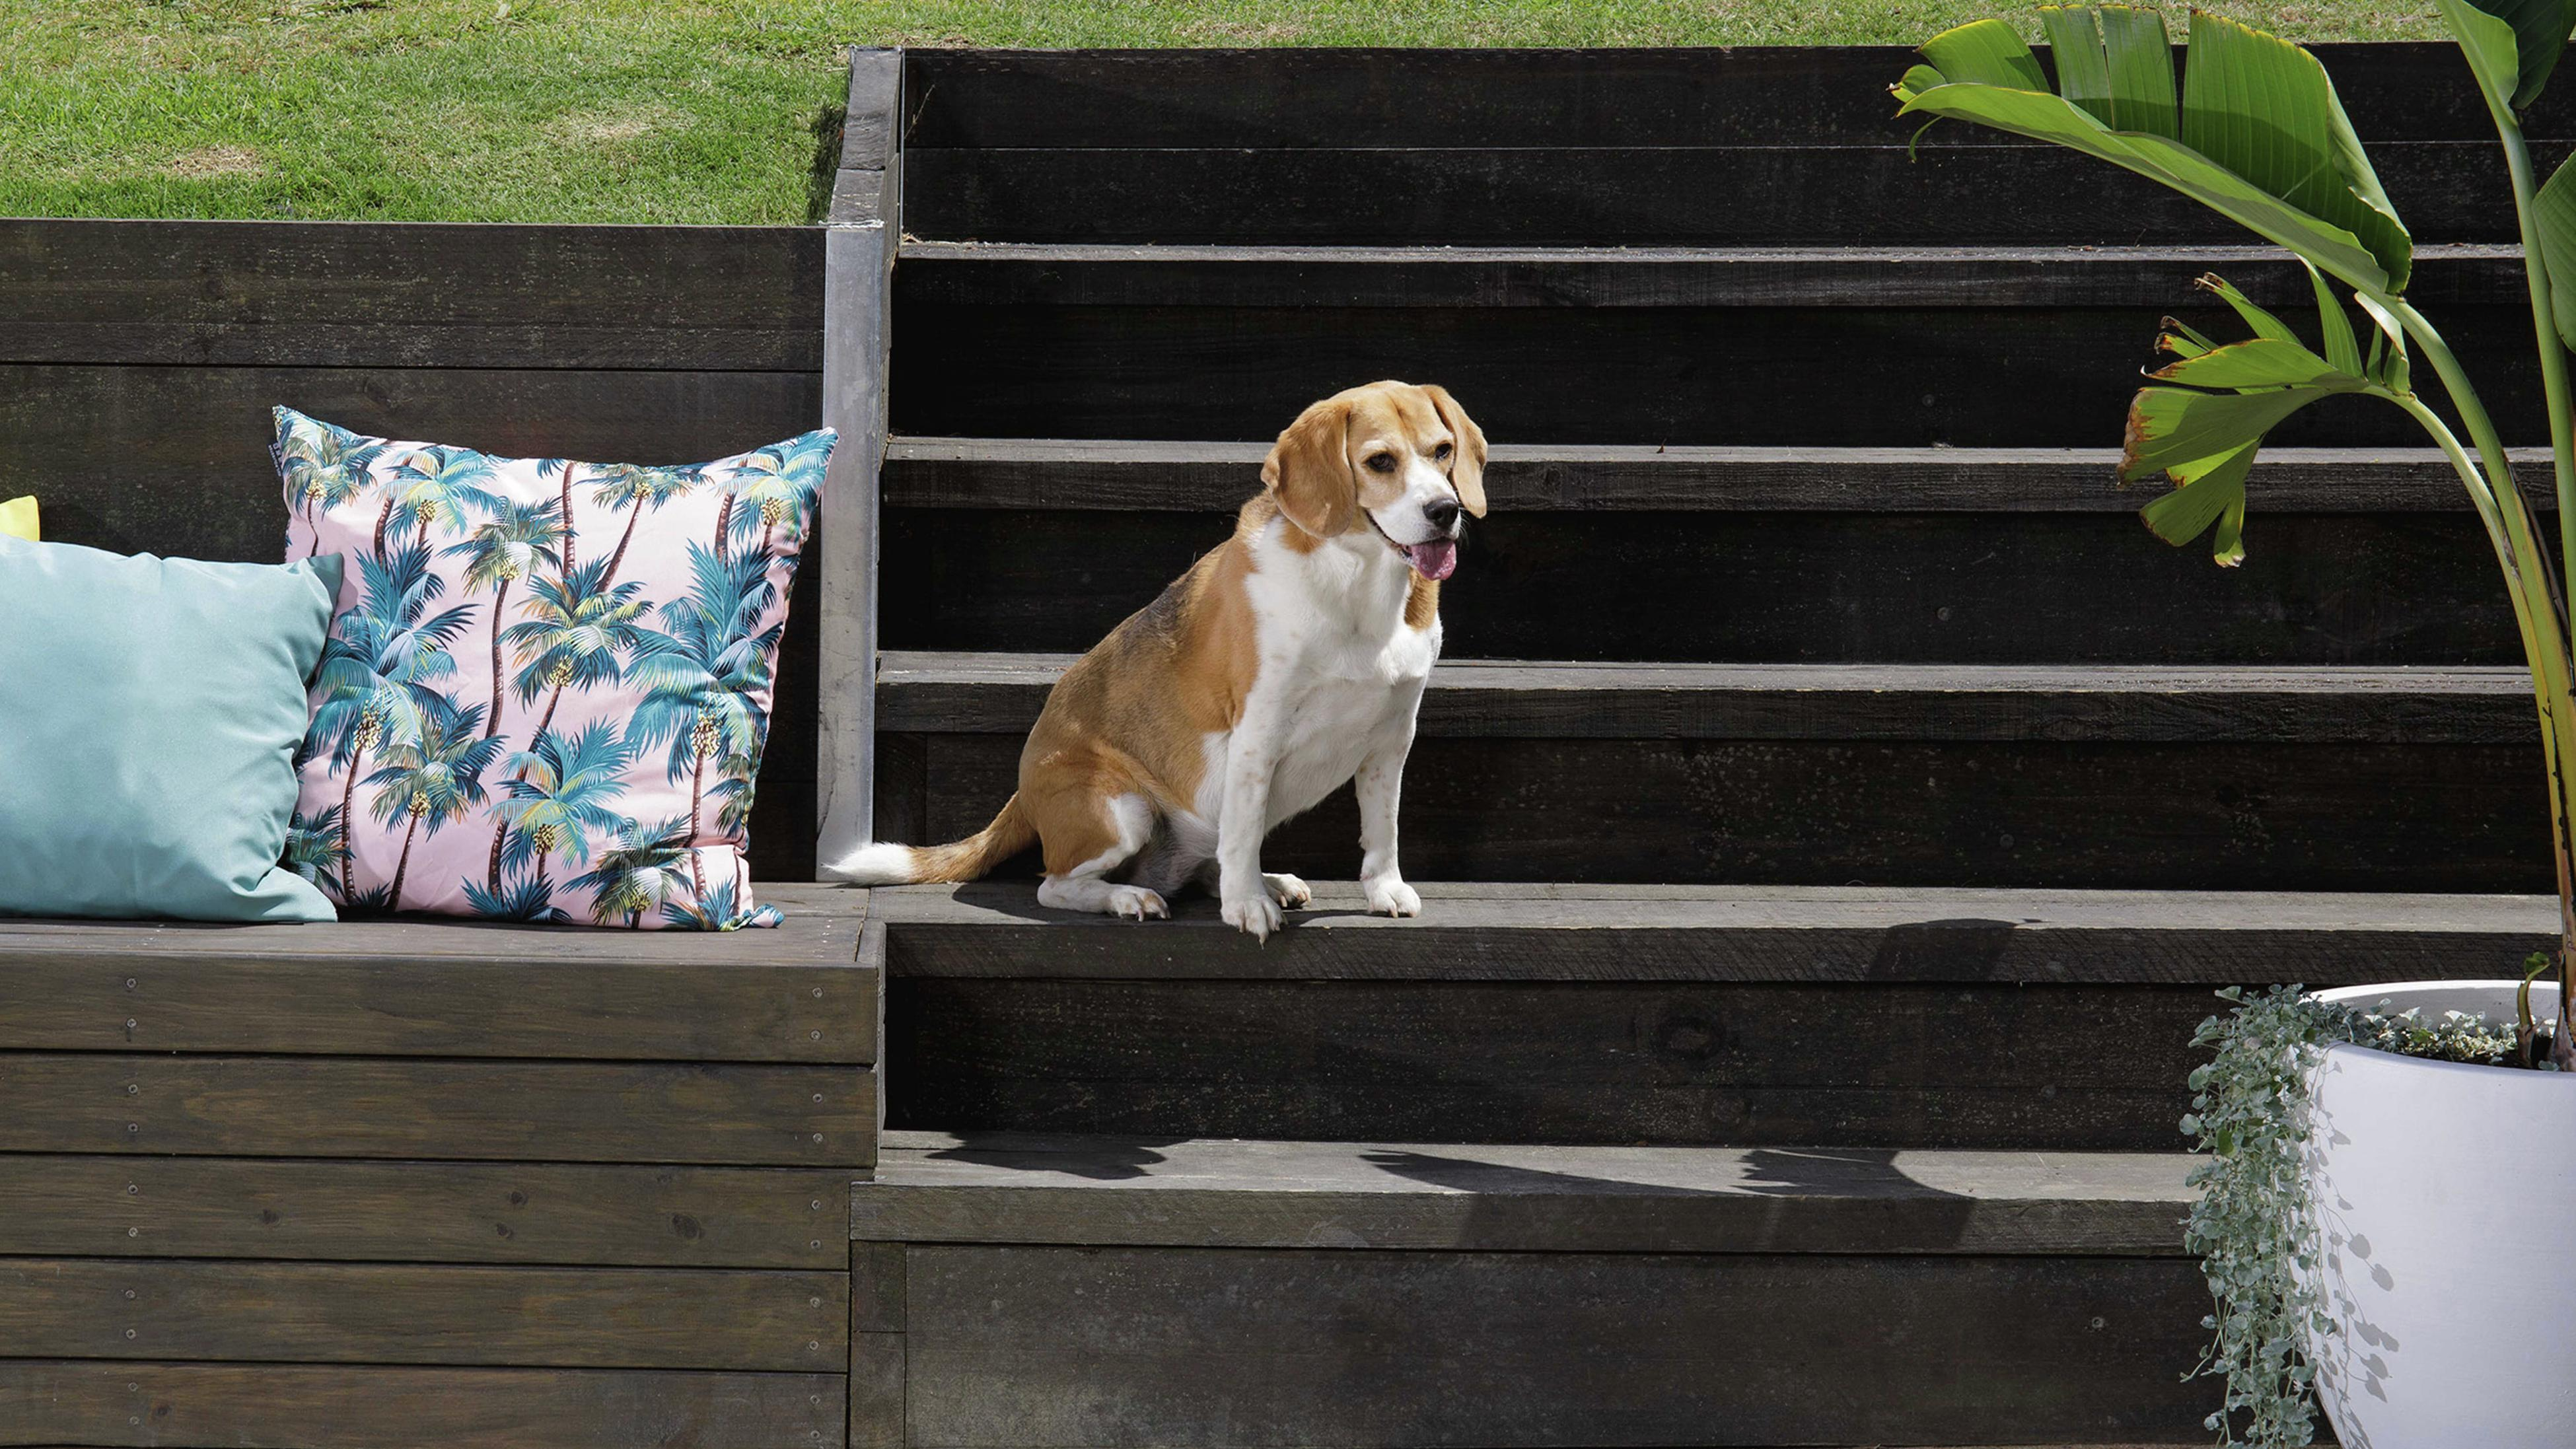 A dog sitting on steps leading down to outdoor dining area